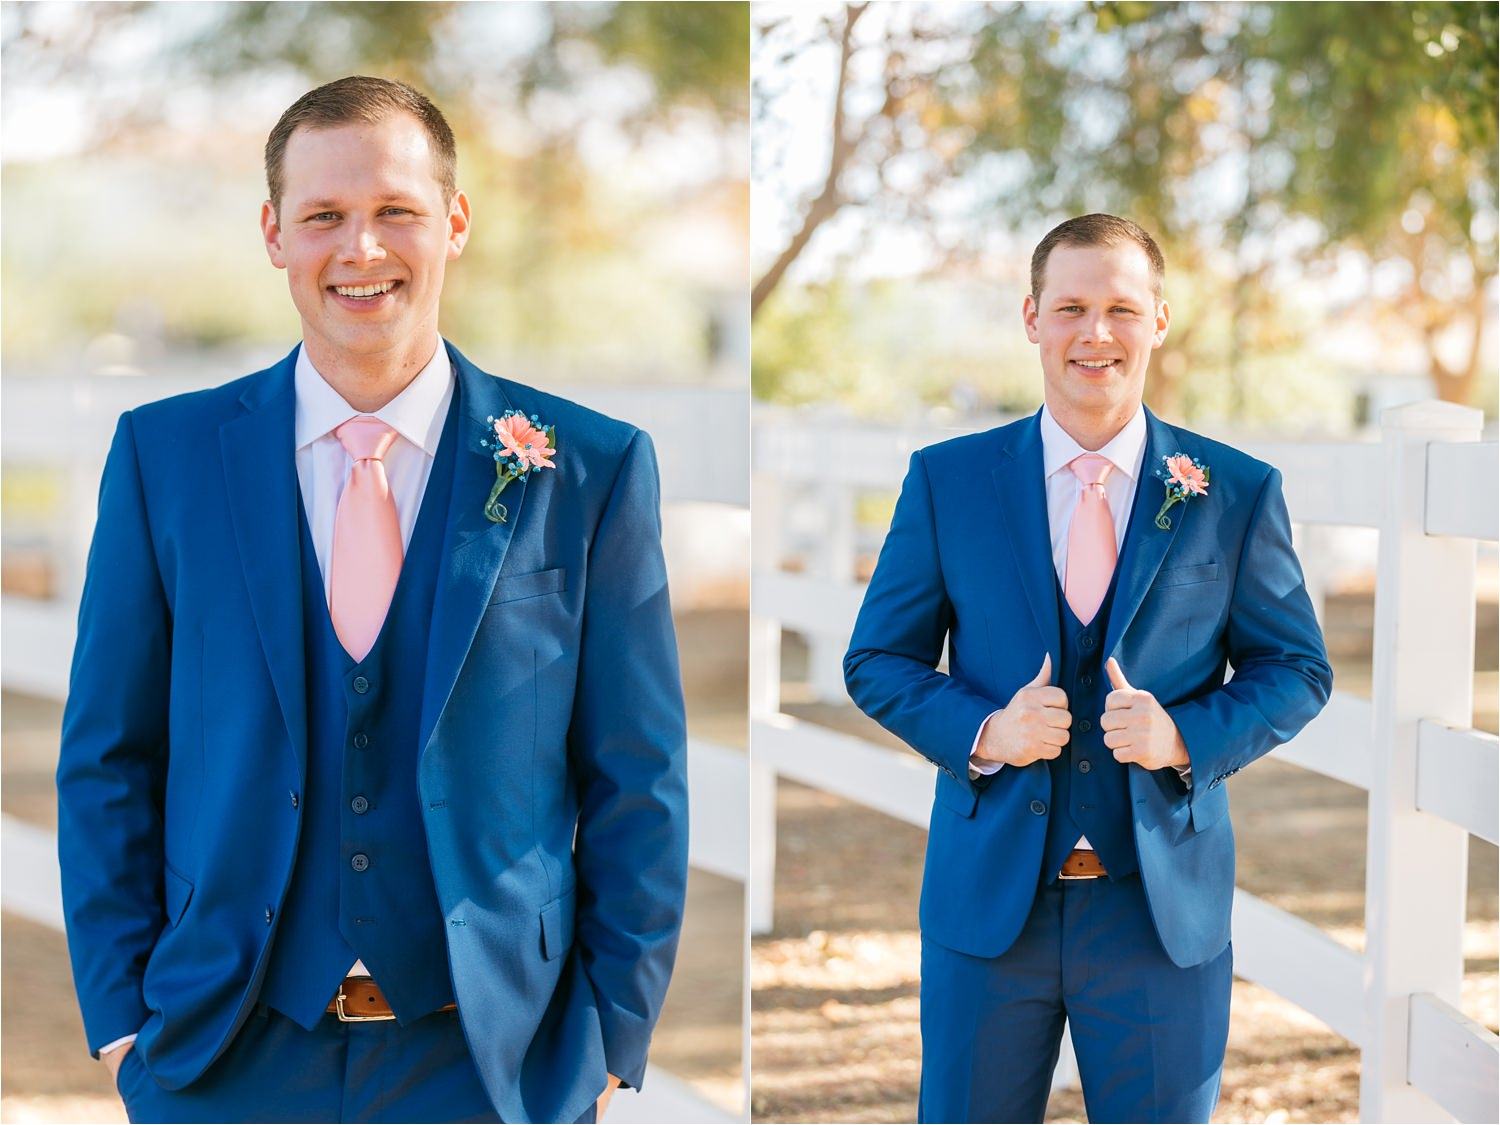 Groom in blue suit - https://brittneyhannonphotography.com